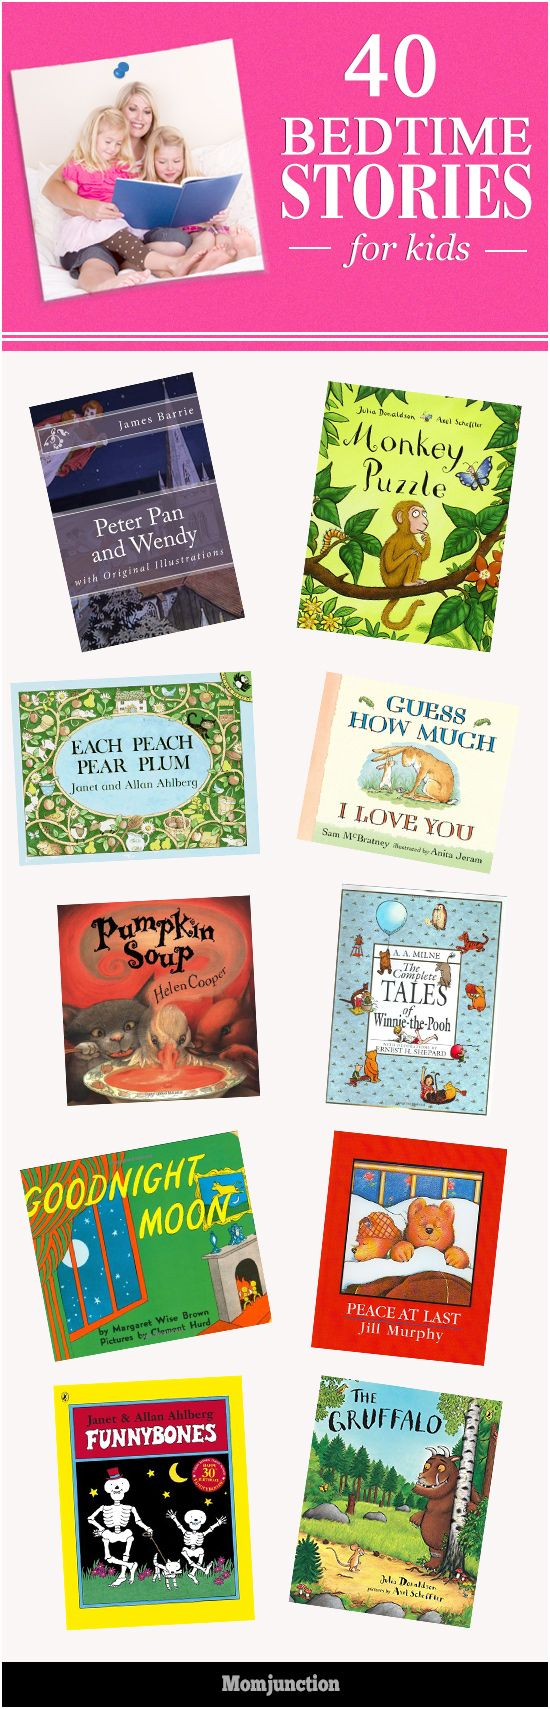 27 Classic And Funny Bedtime Stories For Kids